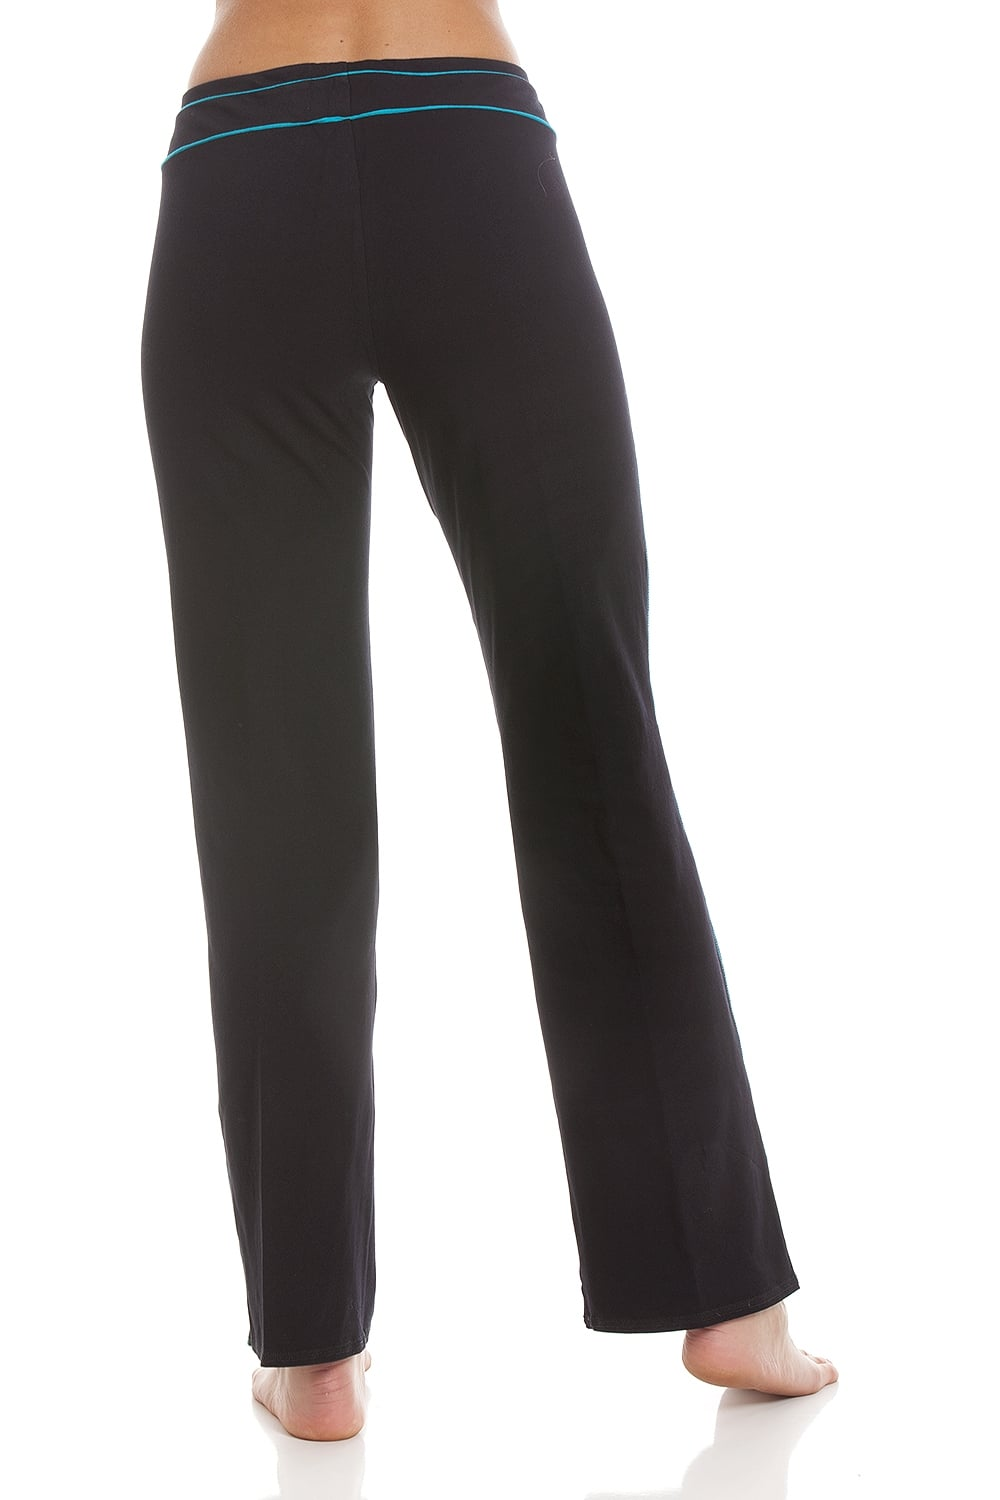 big discount sale newest great prices Ex Marks & Spencer Womens Full Length Black Jogging Bottoms